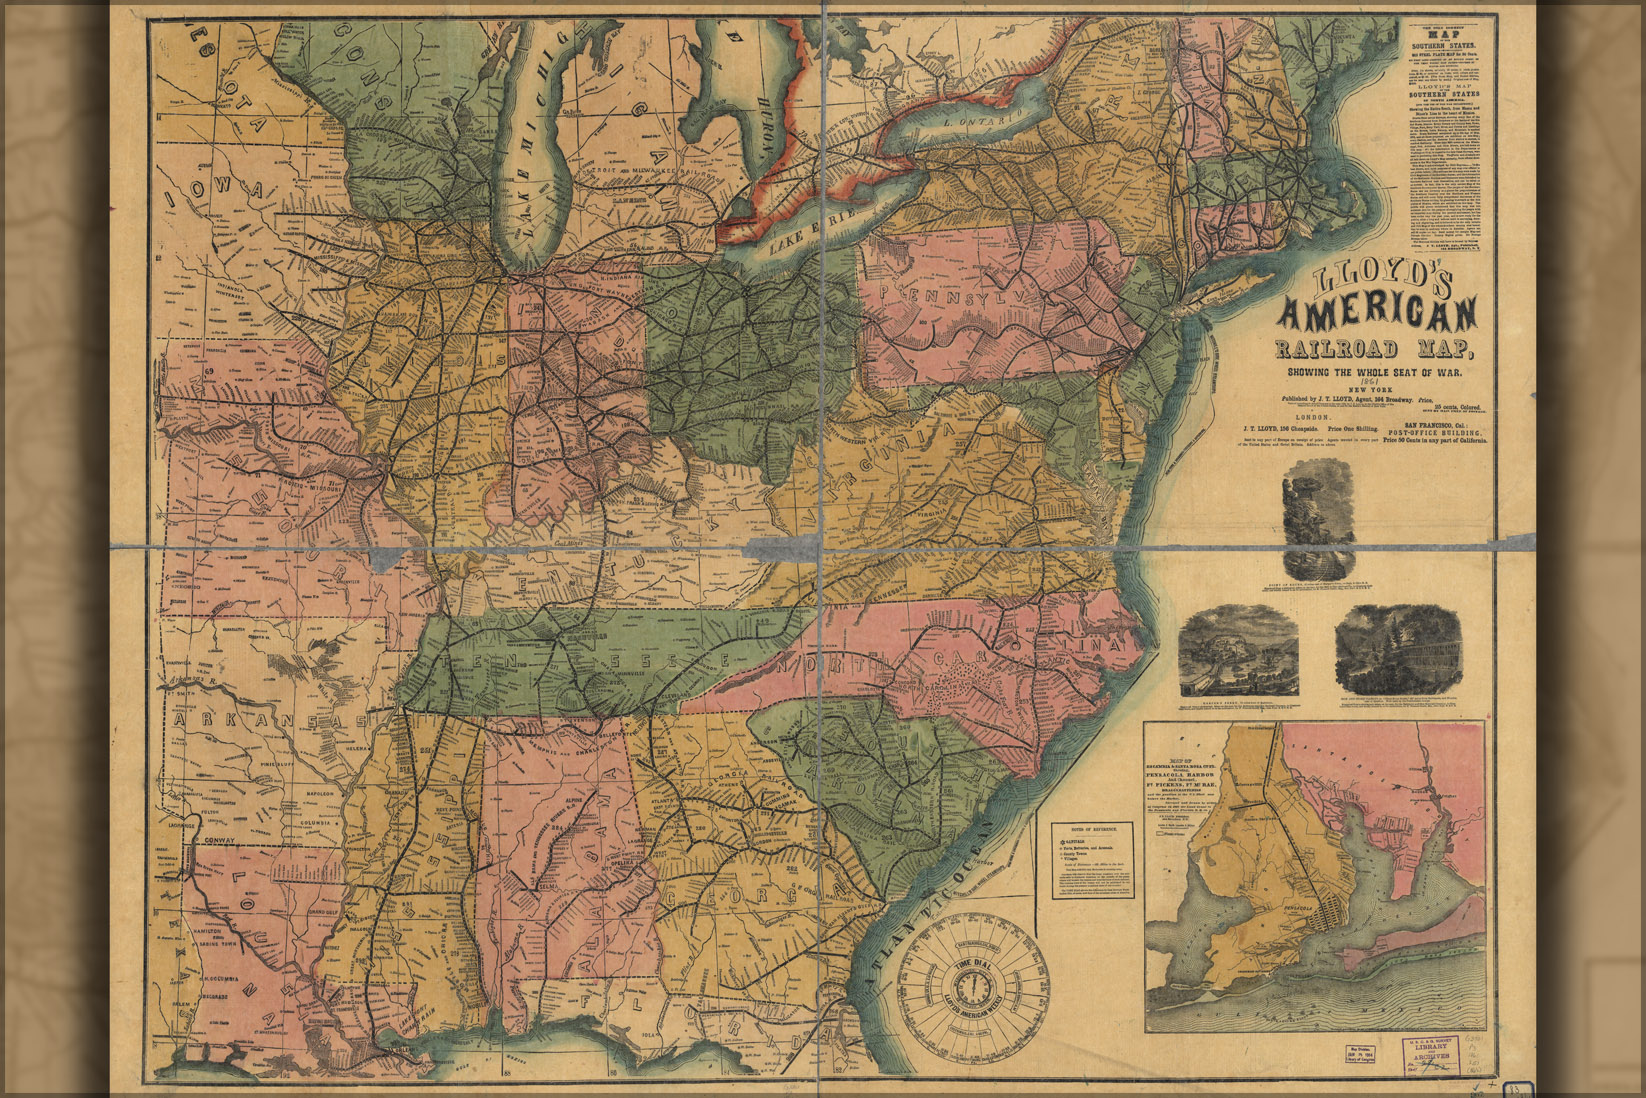 24 X36 Gallery Poster Civil War Railroad Map Of United